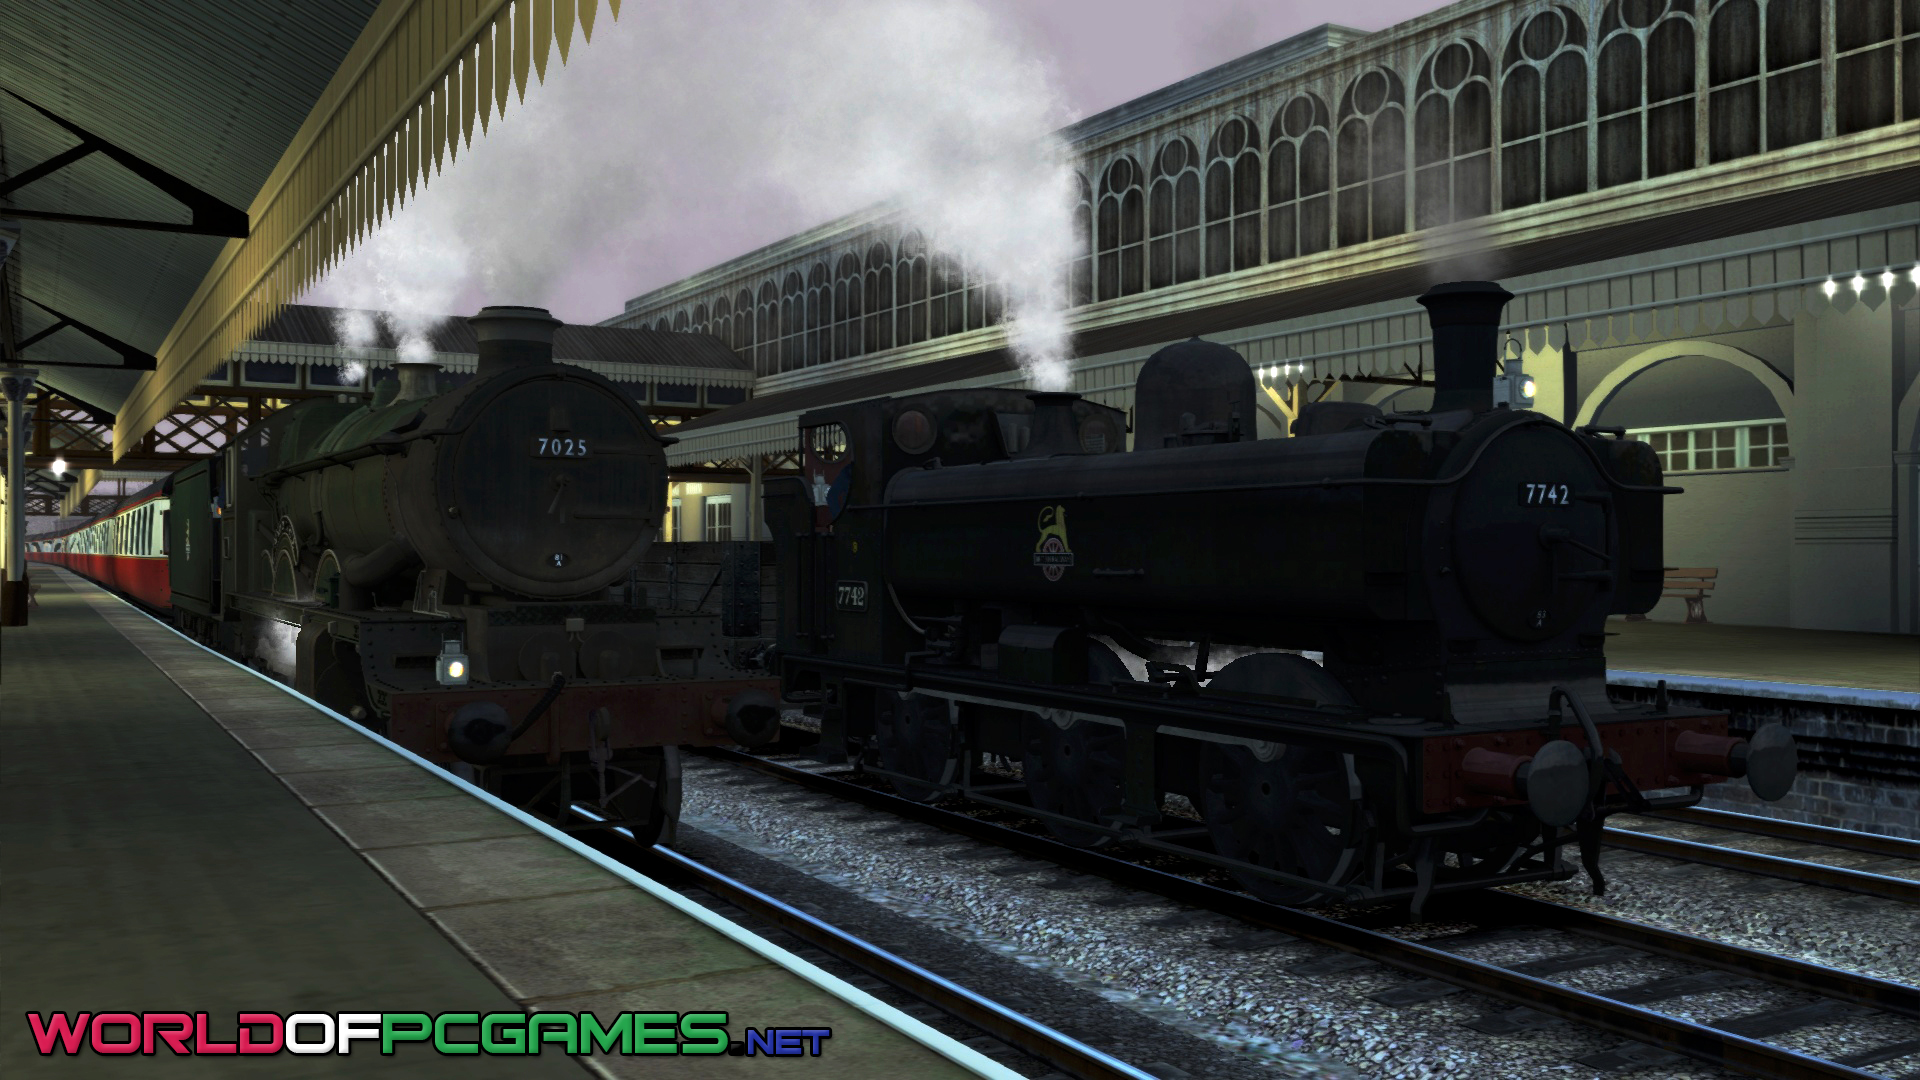 Train Simulator 2017 Free Download By Worldofpcgames.net